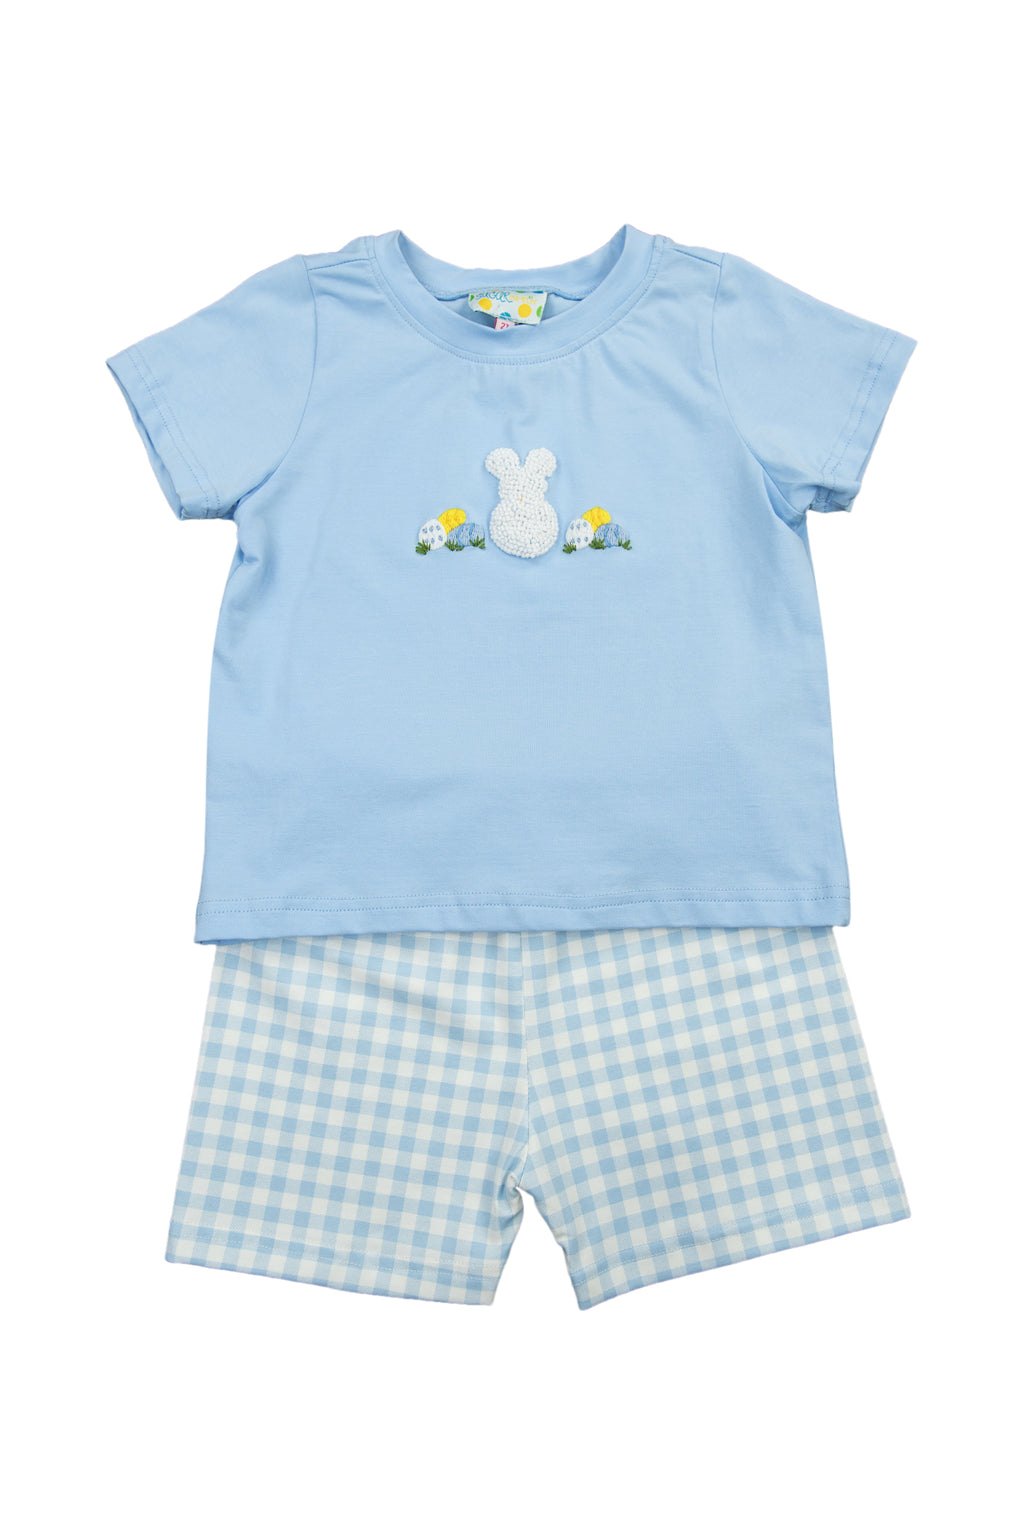 Boys French Knot Bunny/Egg Shorts Set